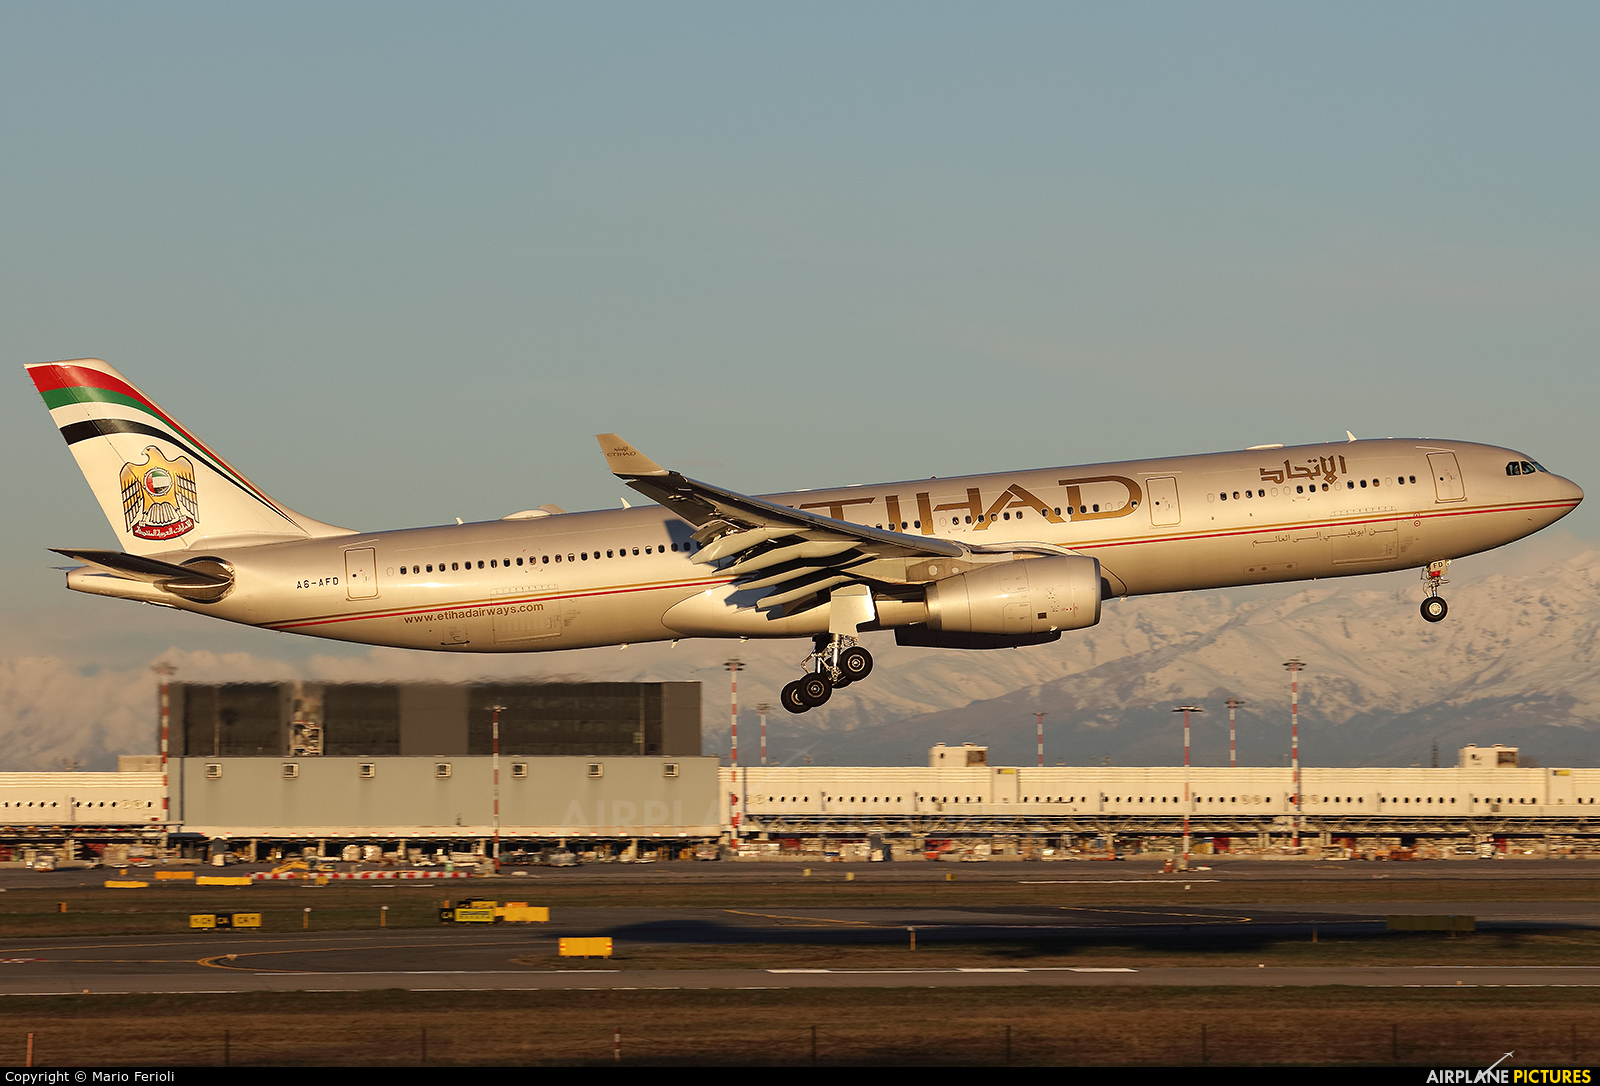 Etihad Airways A6-AFD aircraft at Milan - Malpensa